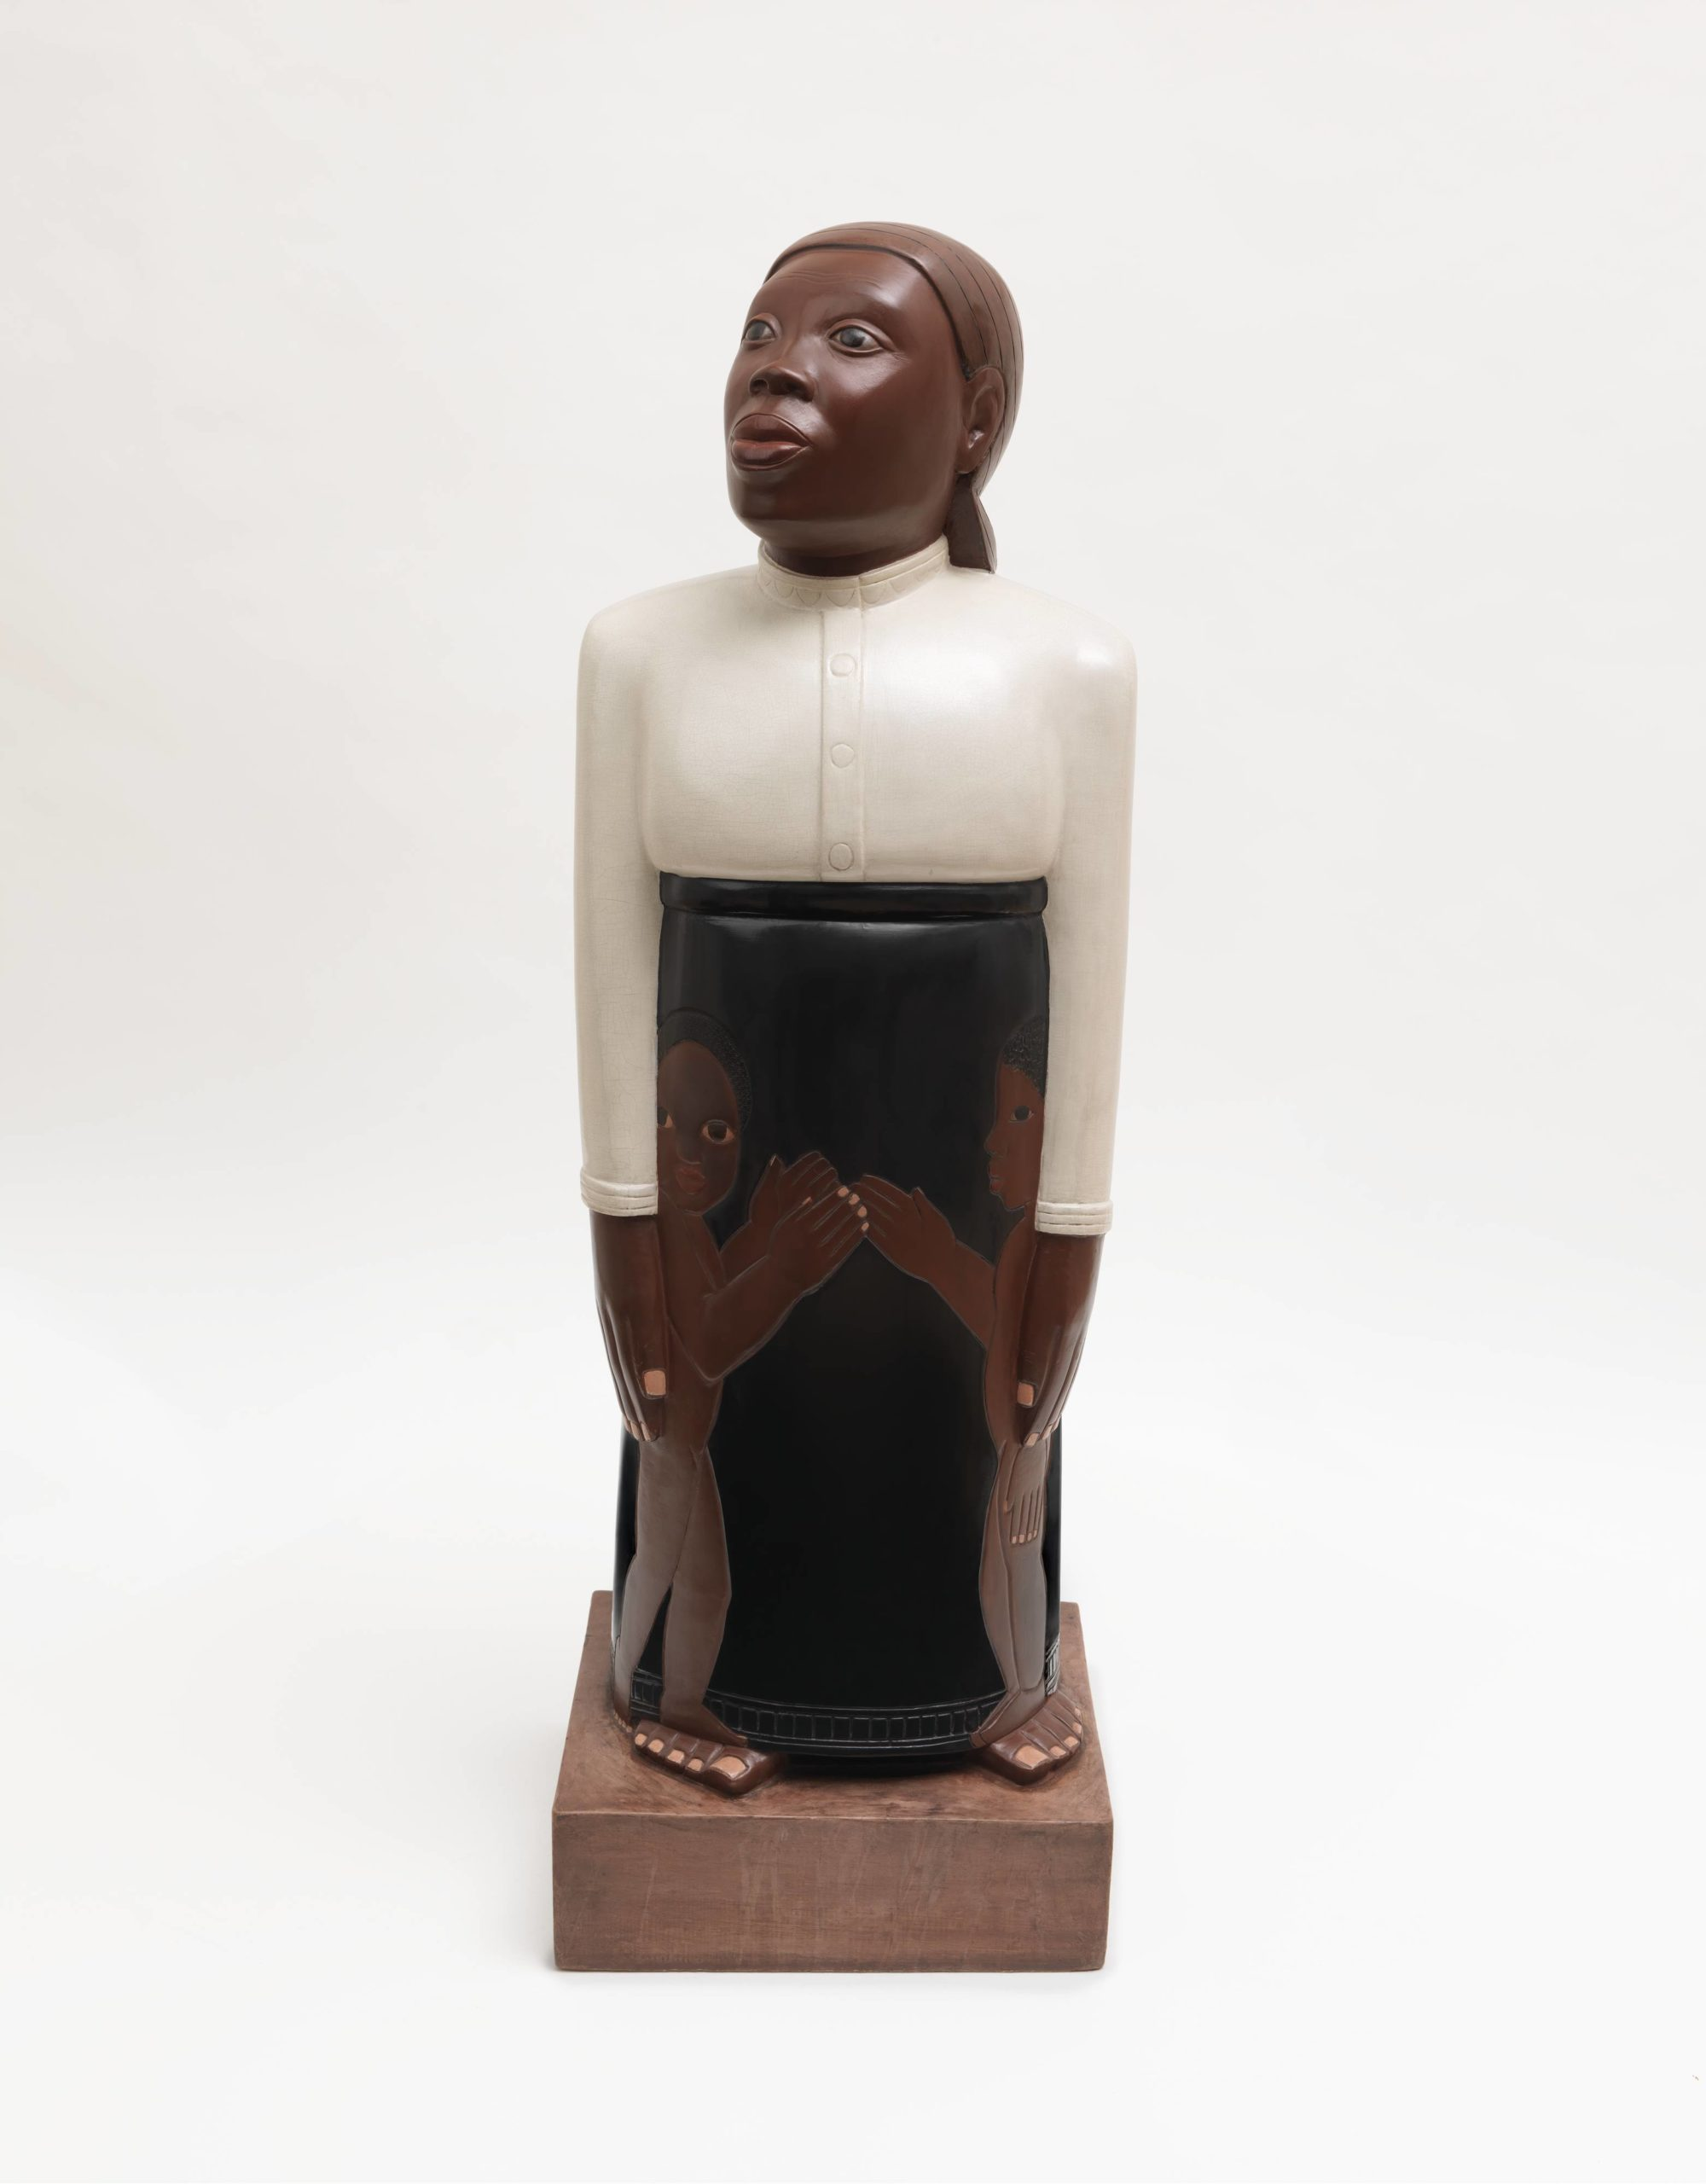 This three foot tall painted wooden sculpture depicts a wide-eyed black woman, standing tall with her hands at her side. Wearing a floor-length black skirt, a modest white blouse, and her hair tied back, the woman stands rigidly straight with her chin raised, gazing slightly upward. Her body is smooth and slightly stylized with an exaggerated cylindrical shape, but the features of her face have been realistically carved and painted. Partially covered by her hands are two nude [black] children that have been painted and carved in relief on the front her skirt. They stand in profile, reaching for each other, although the child on our left looks directly at us.